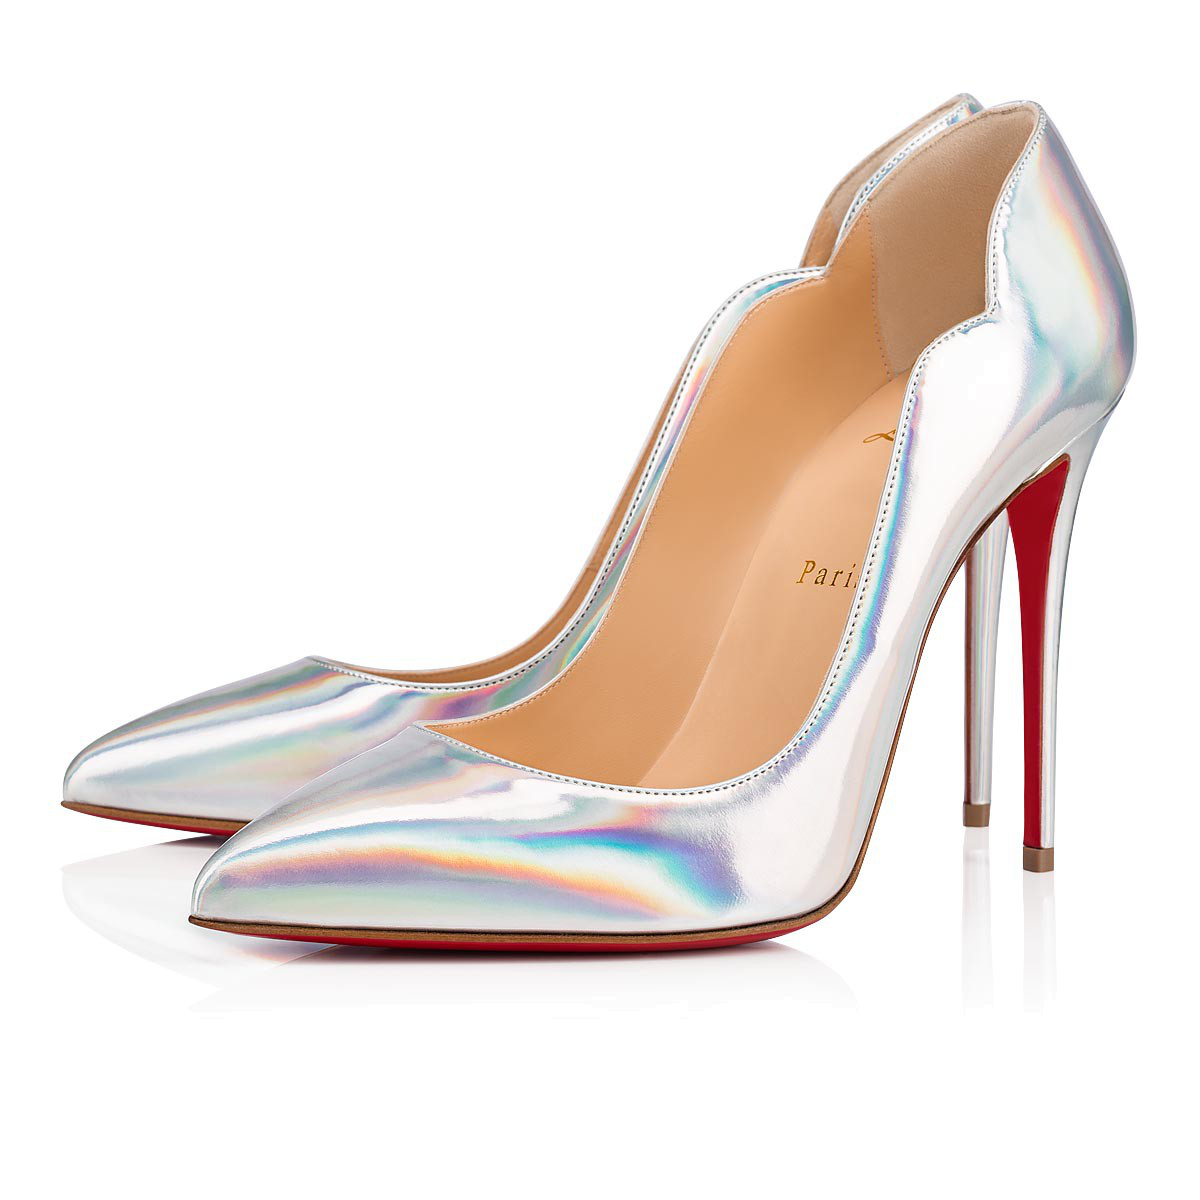 2268f1aaee92 Christian Louboutin Hot Chick 100 Iridescent Leather Pumps In Silver ...